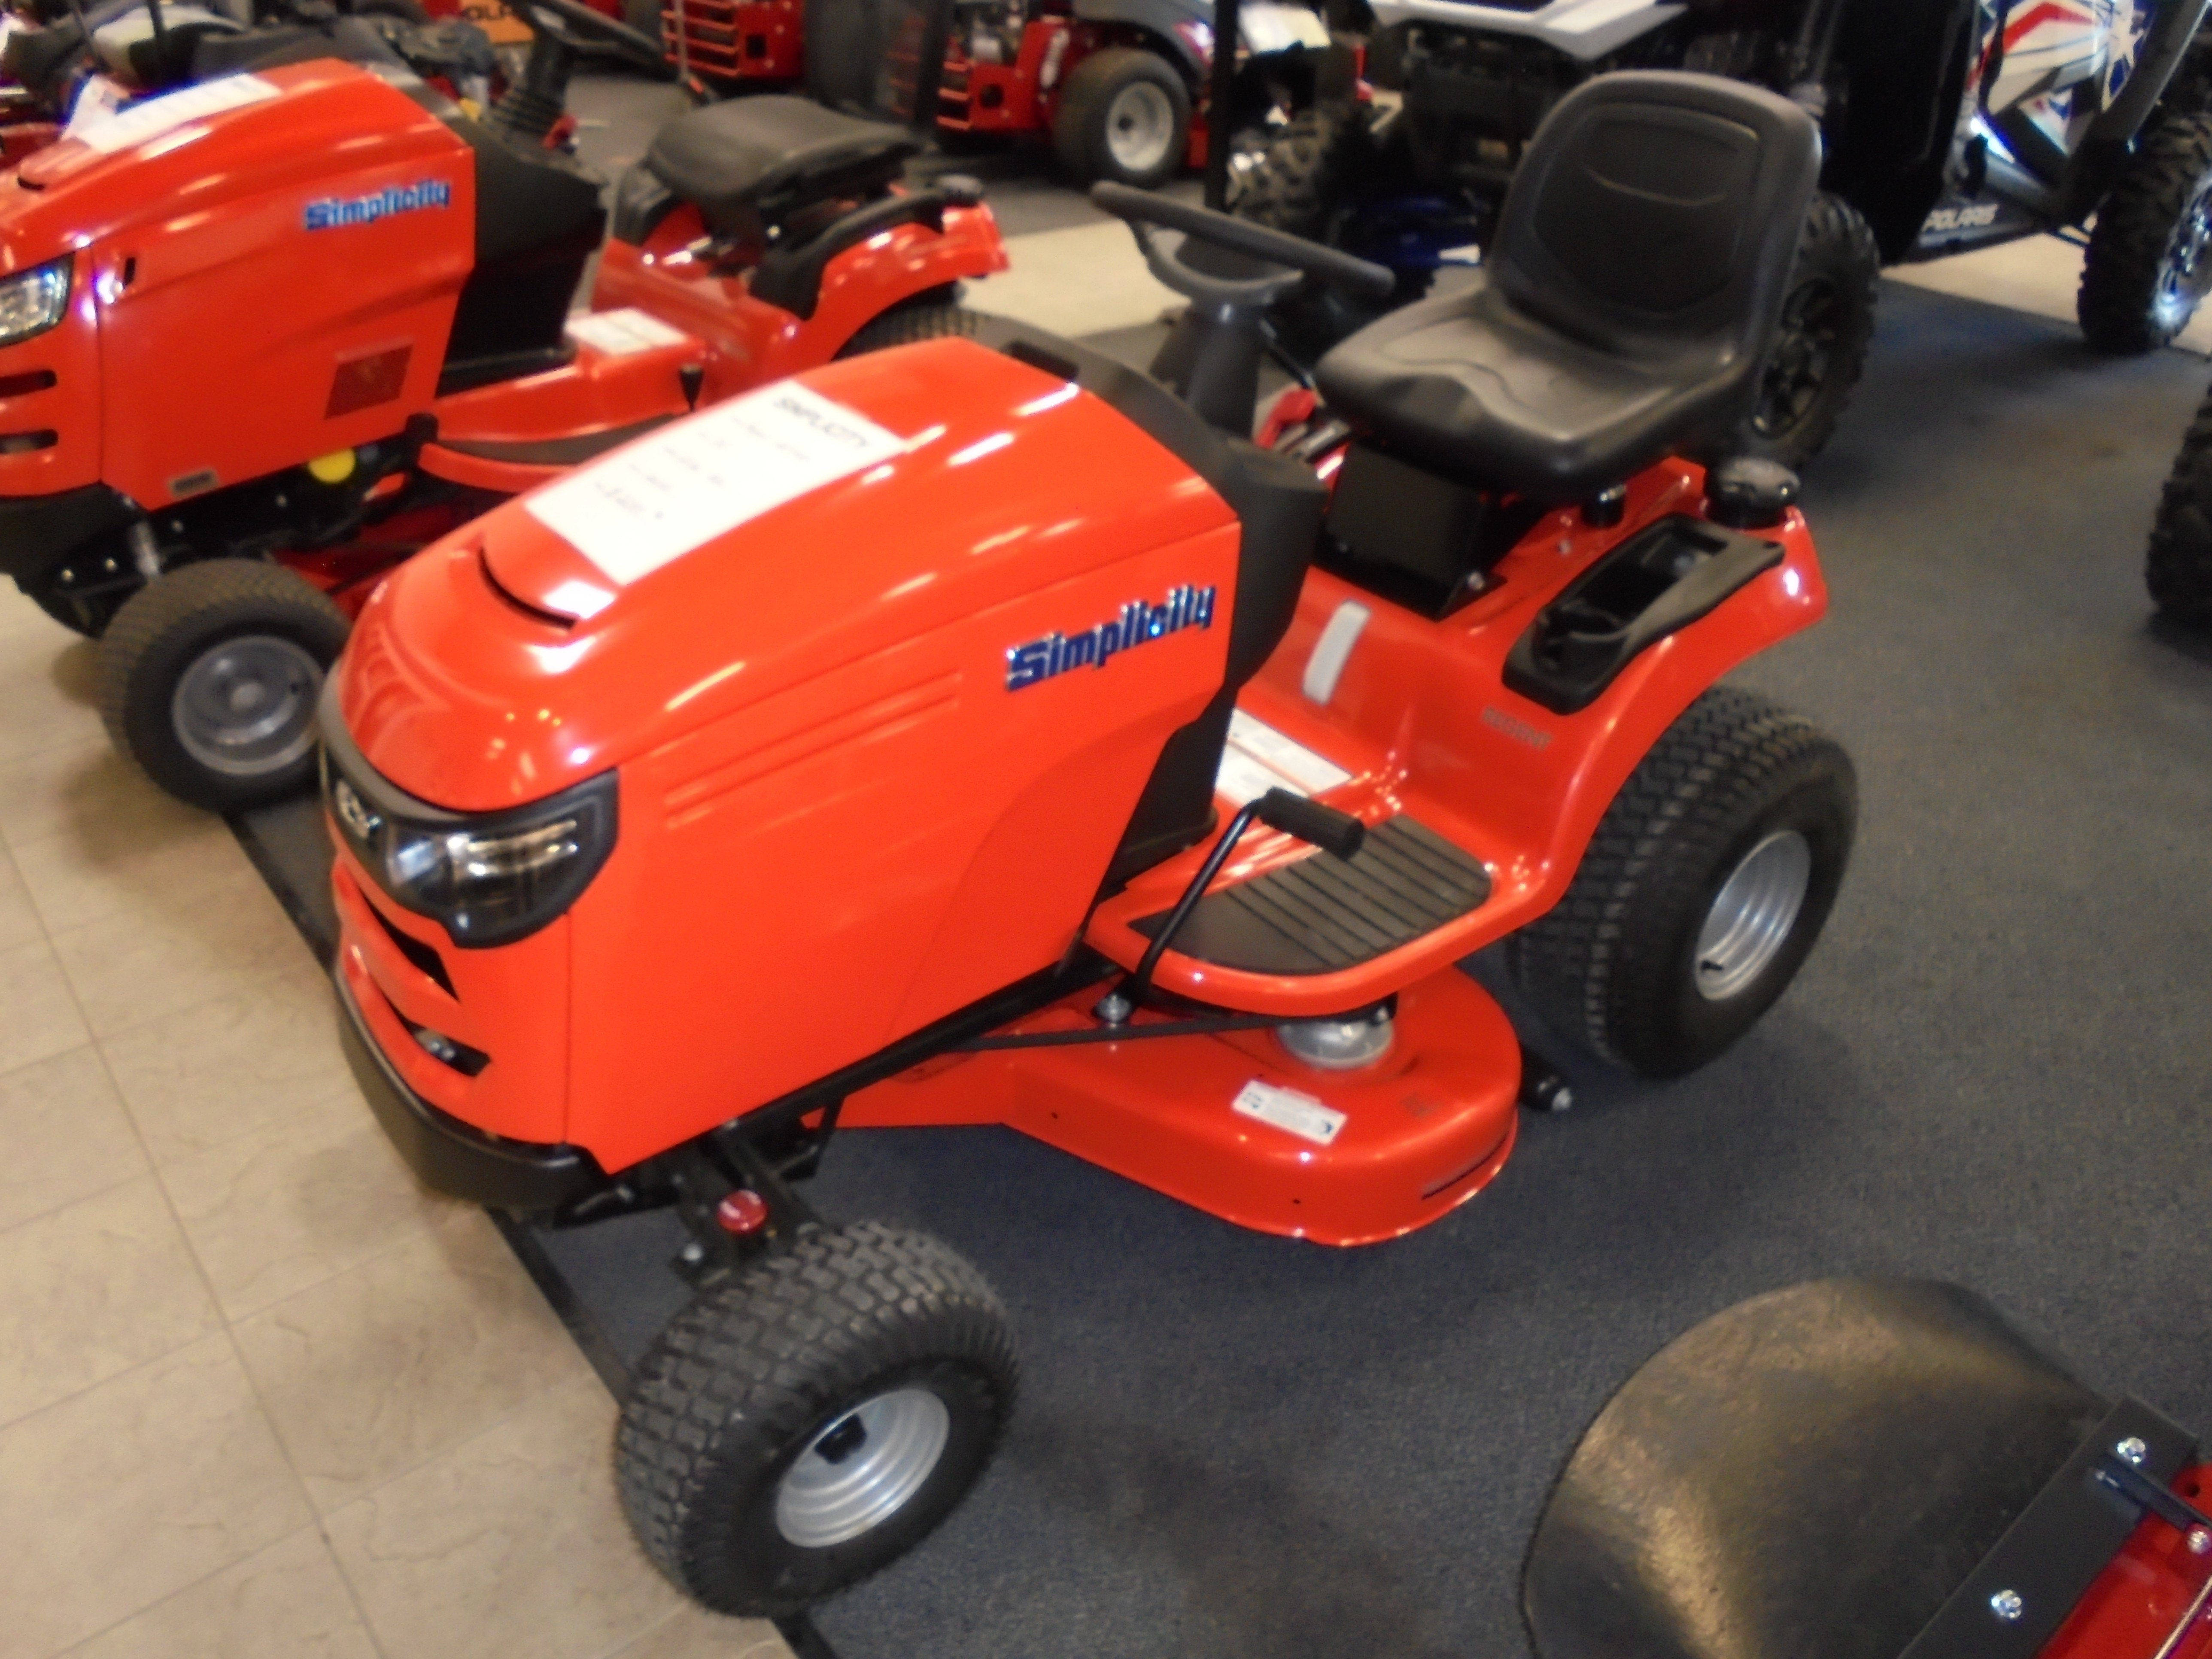 Gruett's Power Center, Polaris, Simplicity, Stihl, Massey